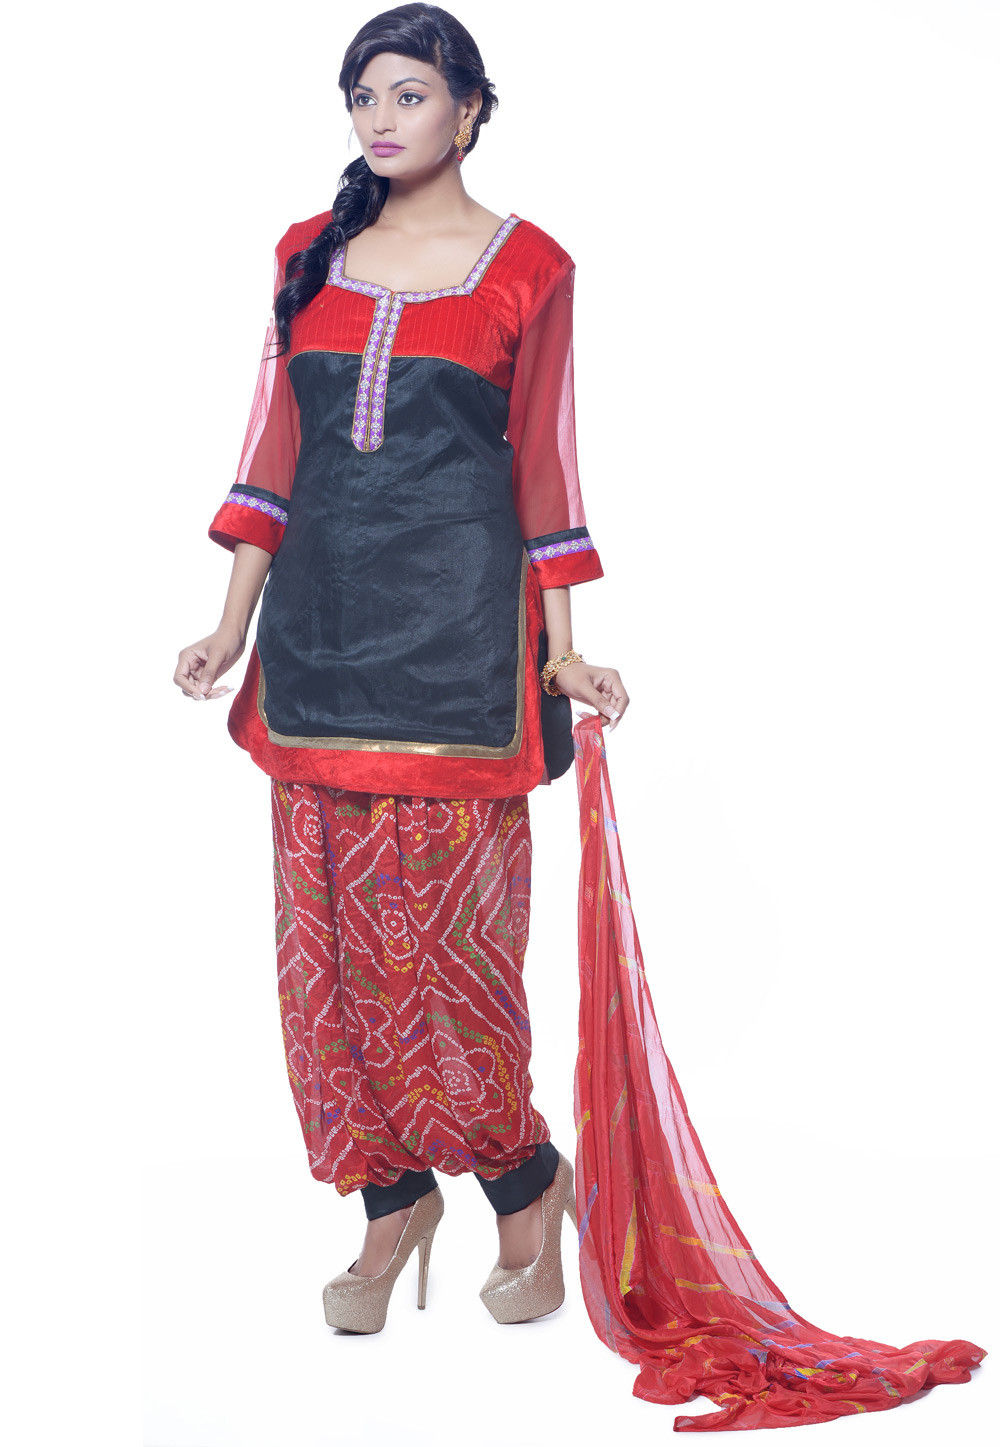 Embroidered Dupion Silk Punjabi Suit in Black